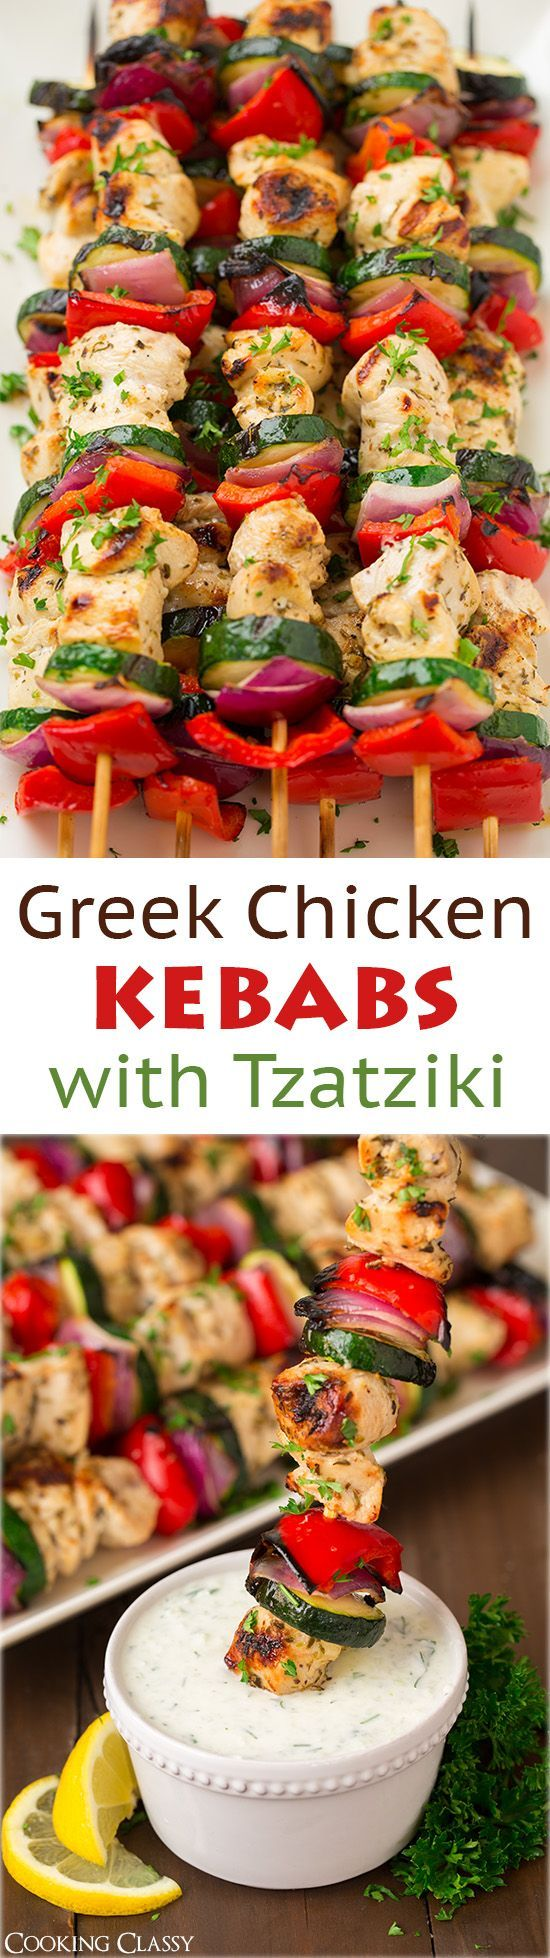 Healthy / Greek Chicken Kebabs with Tzatziki Sauce